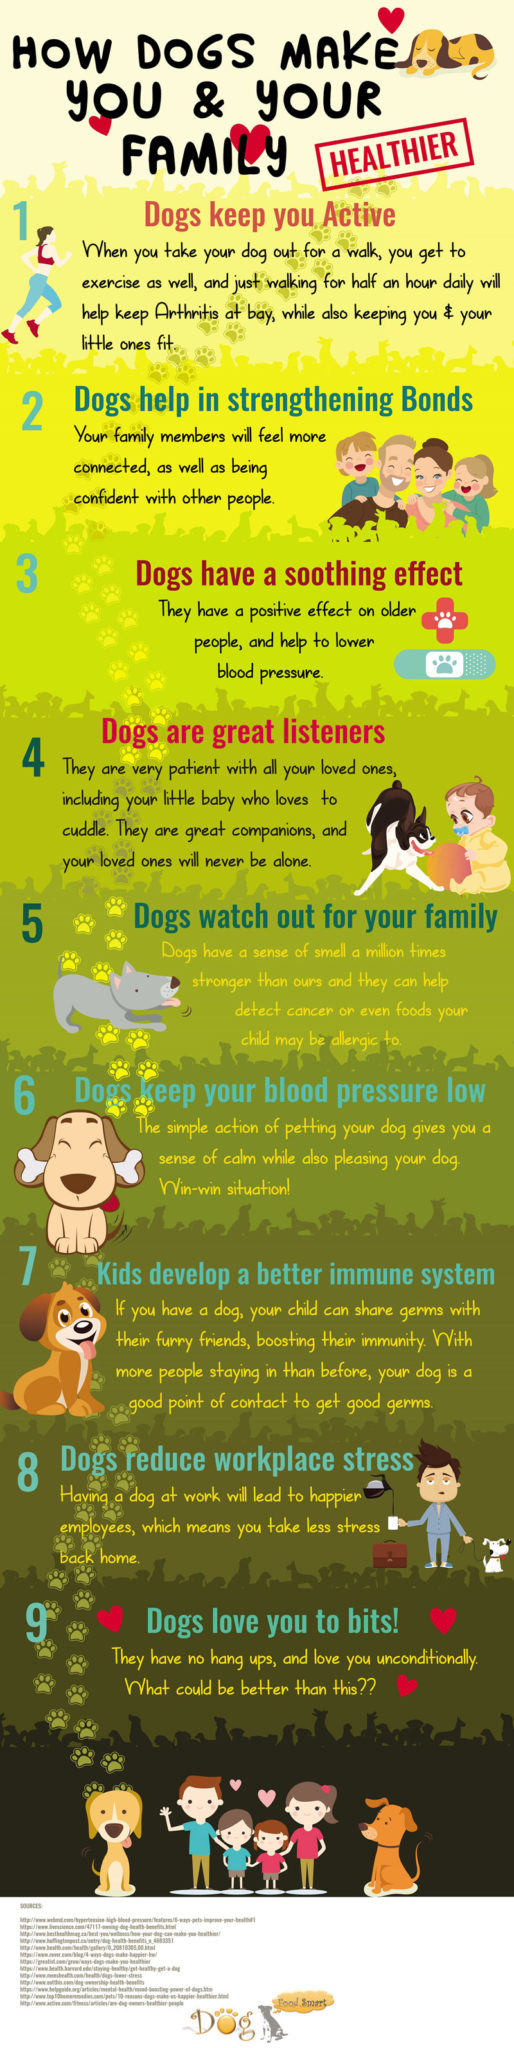 how dogs make you and your family happy